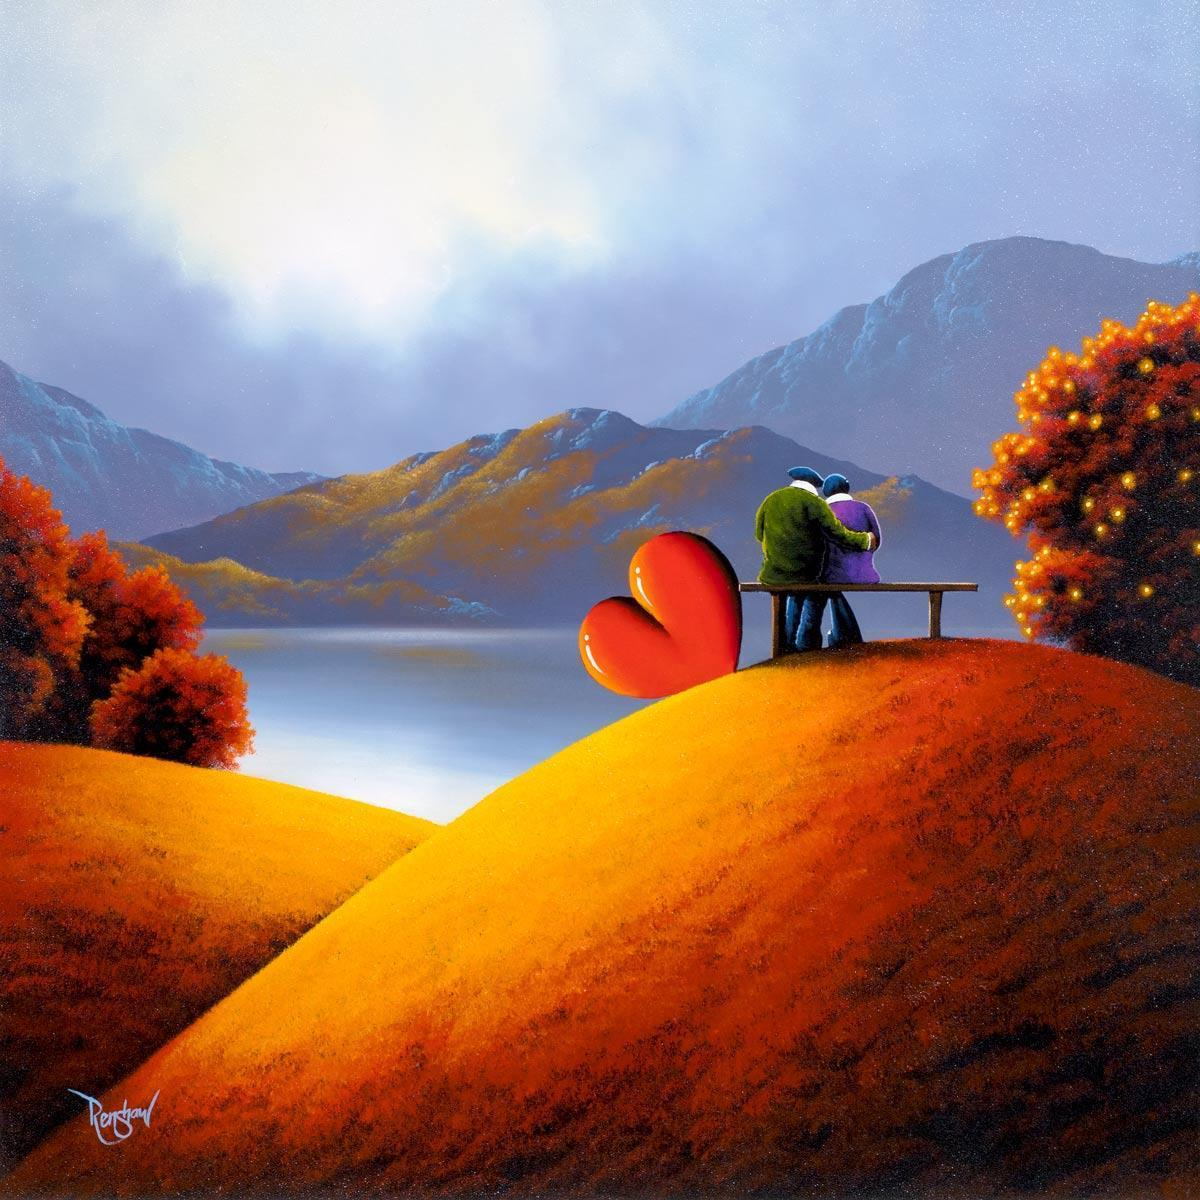 Take It All In - Original David Renshaw